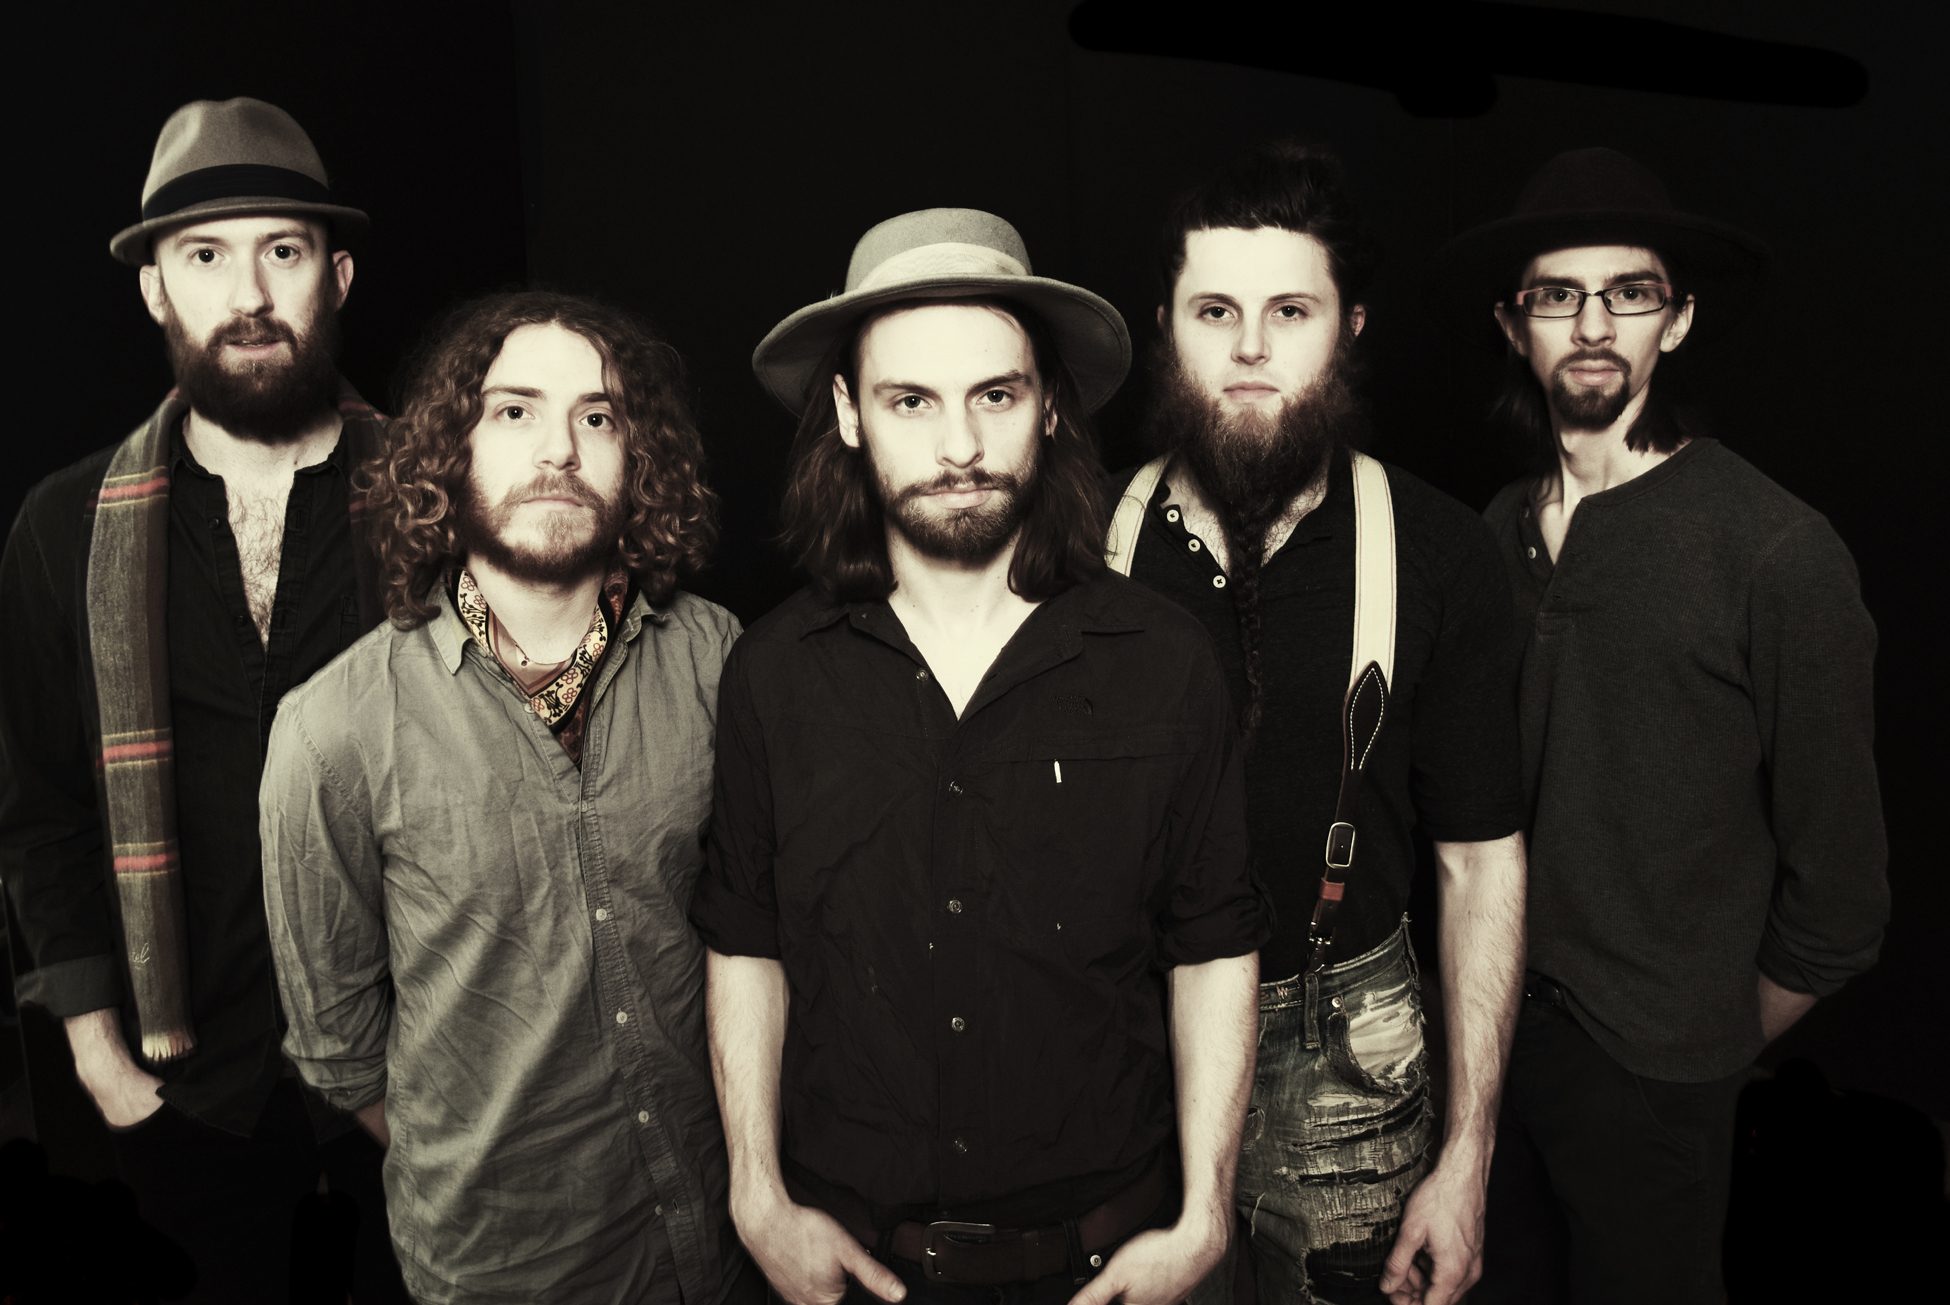 Parsonsfield with The Observers